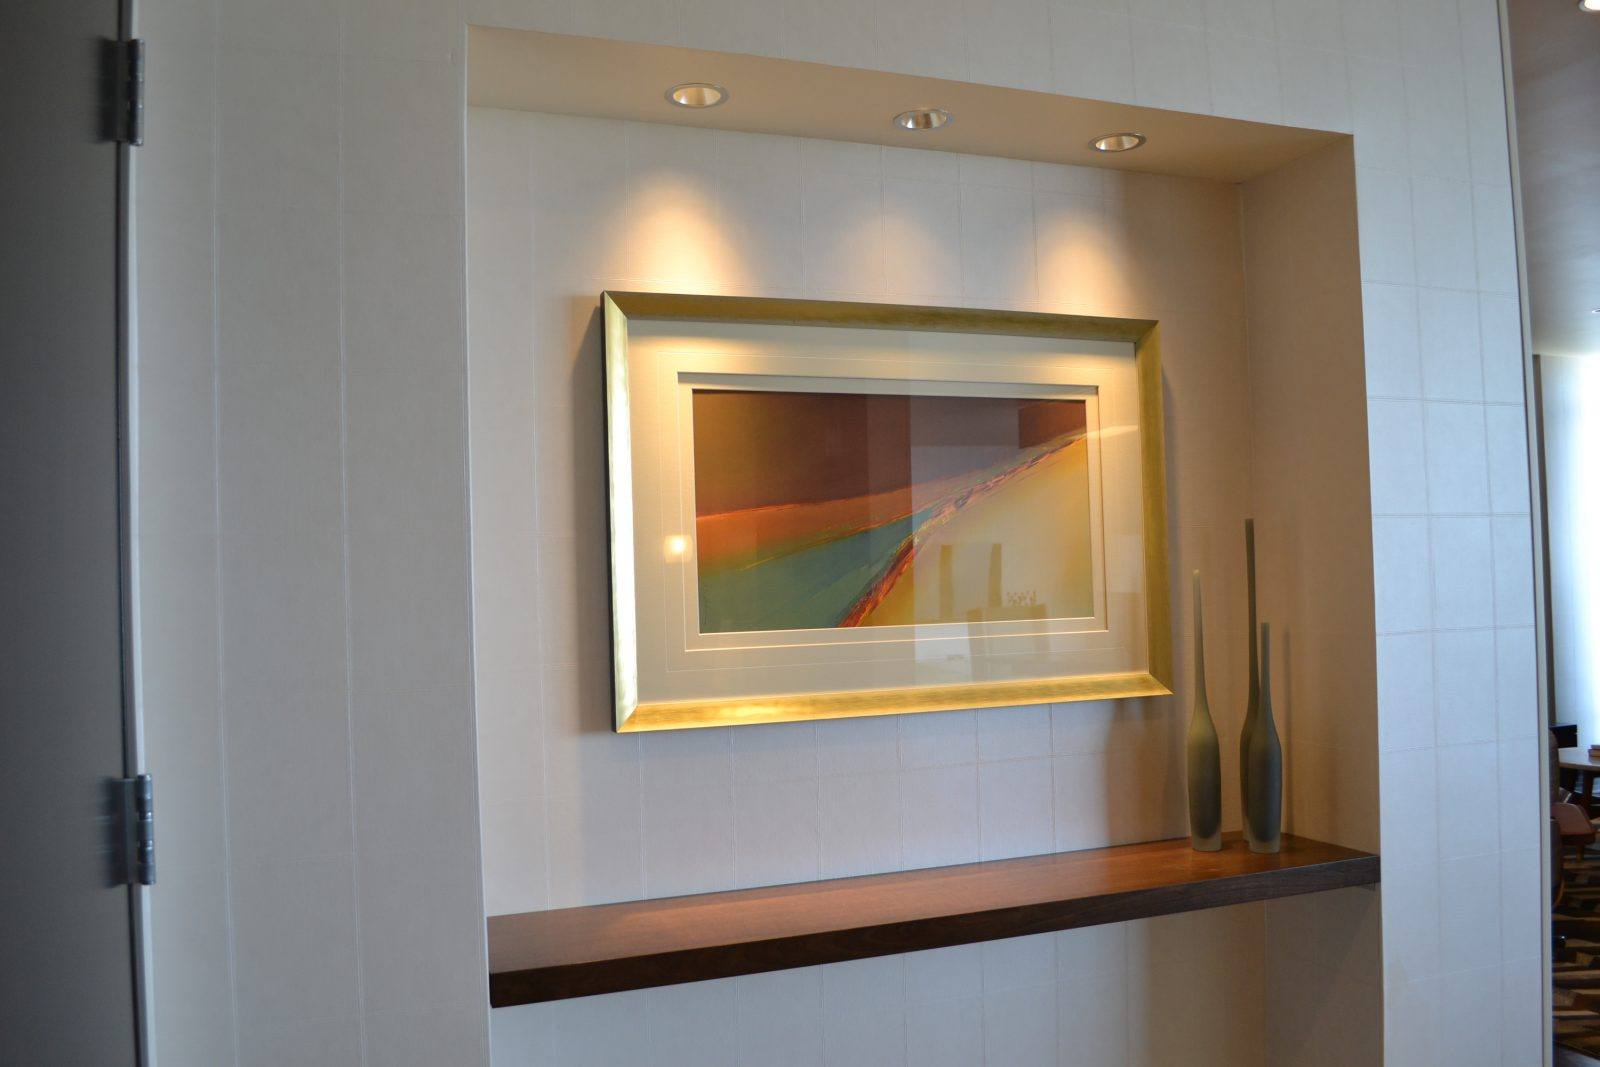 framed artwork in a hotel room